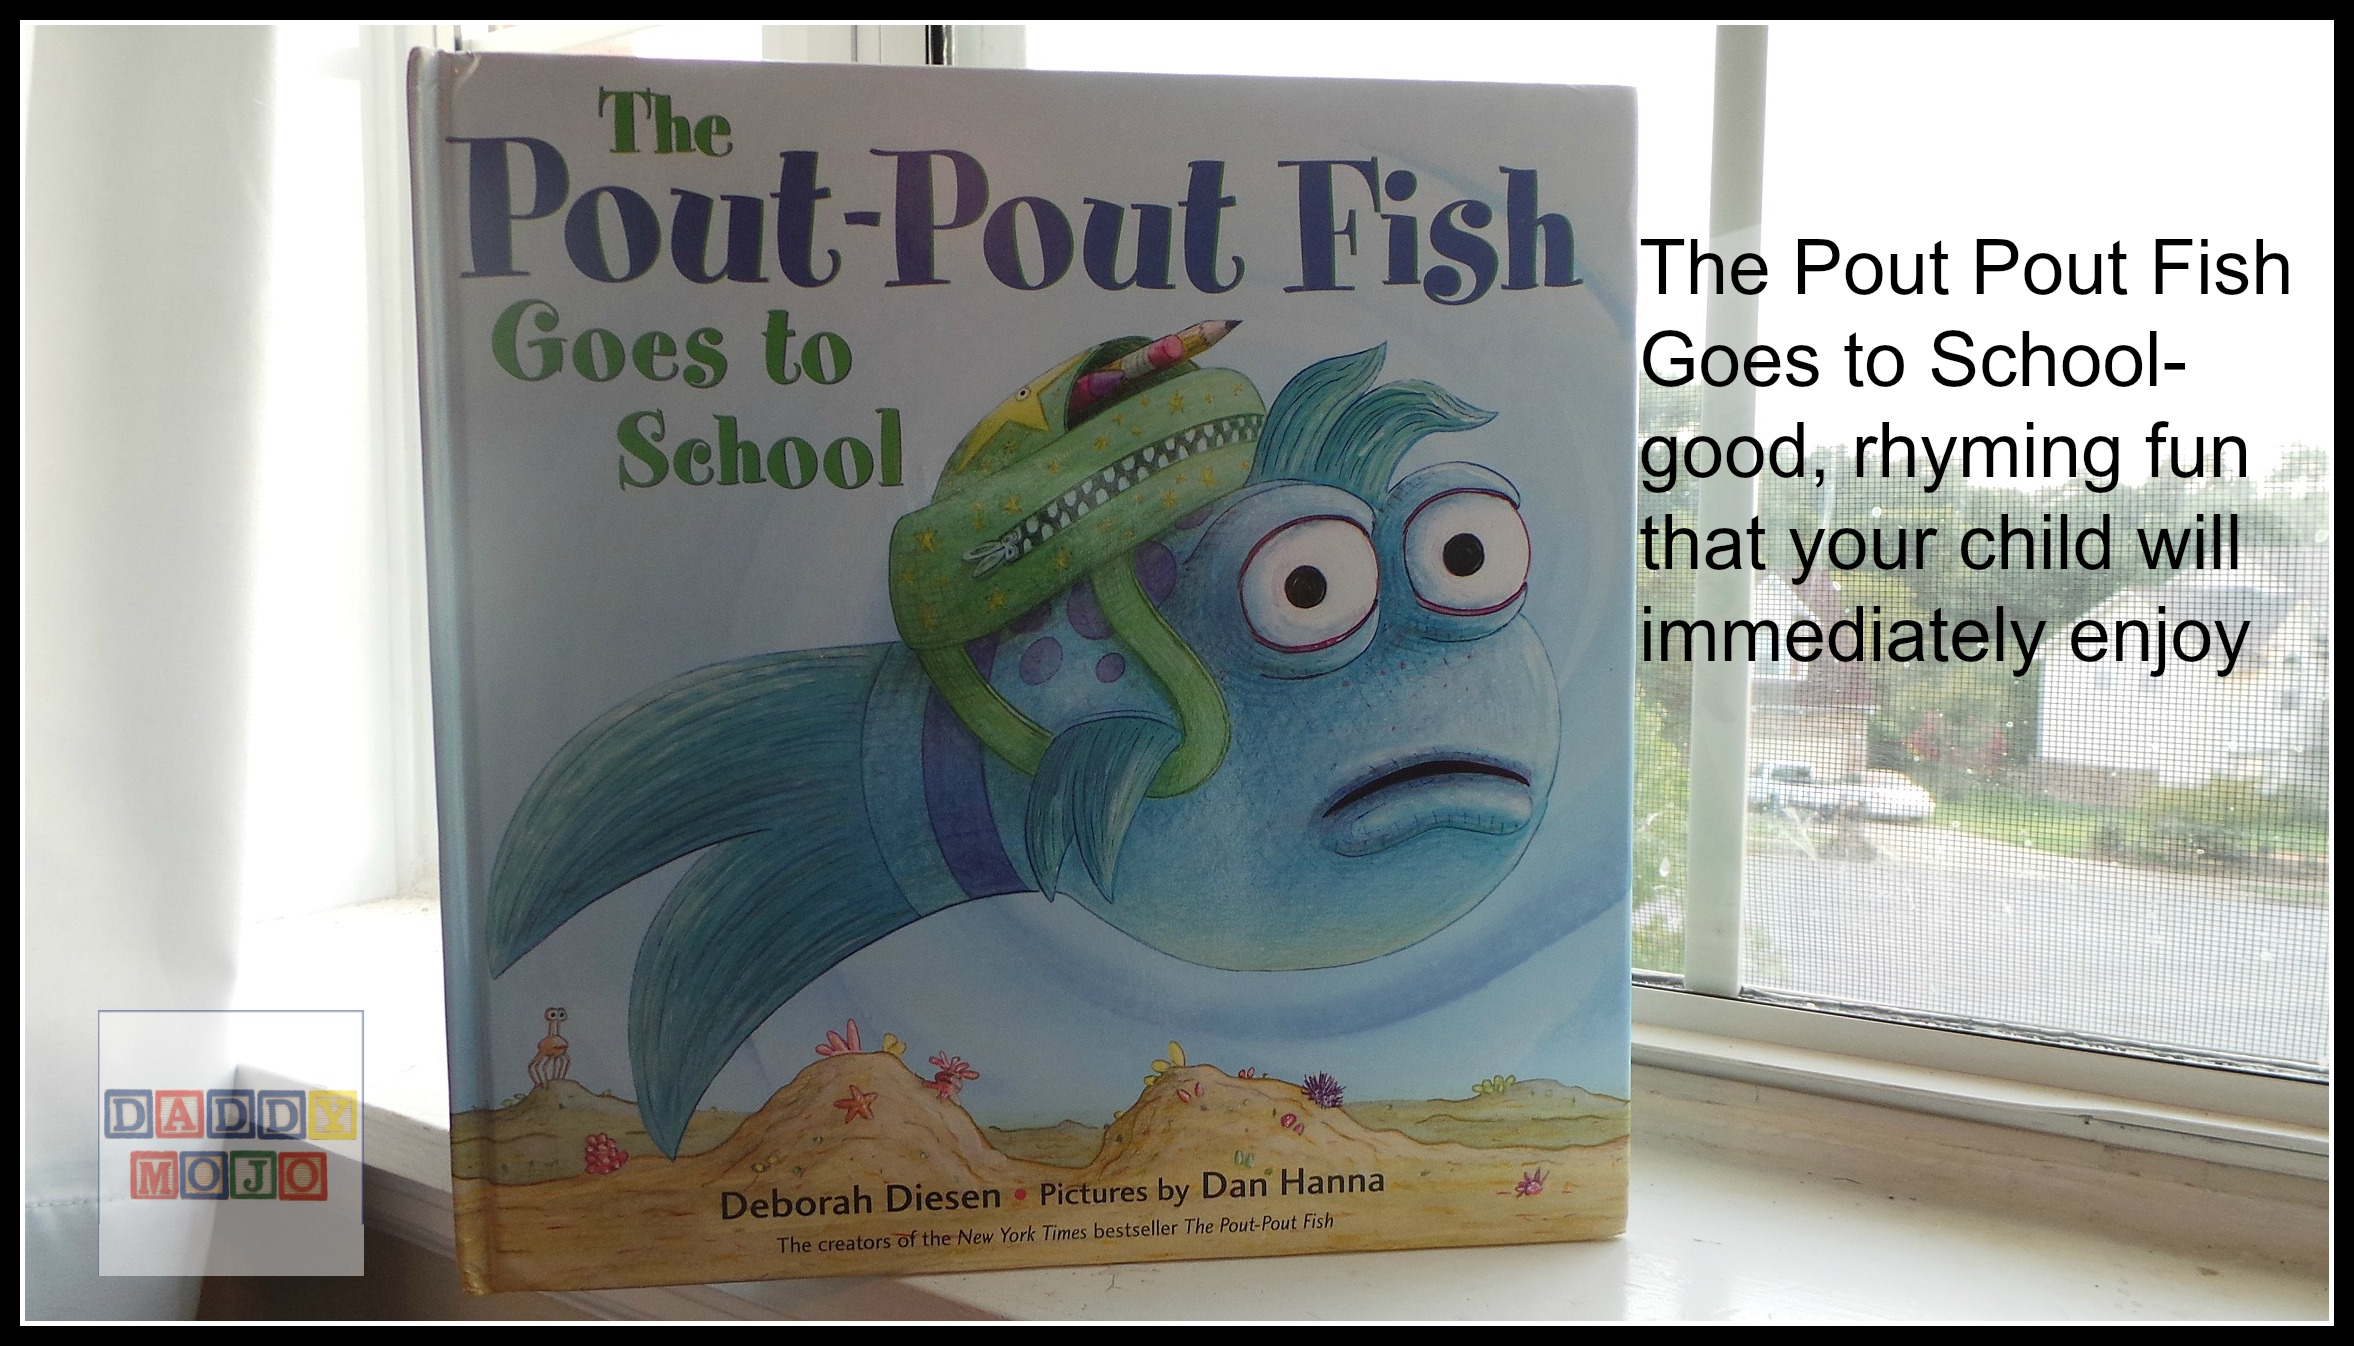 Daddy mojo parenting reviews giveaways all age comic for The pout pout fish book